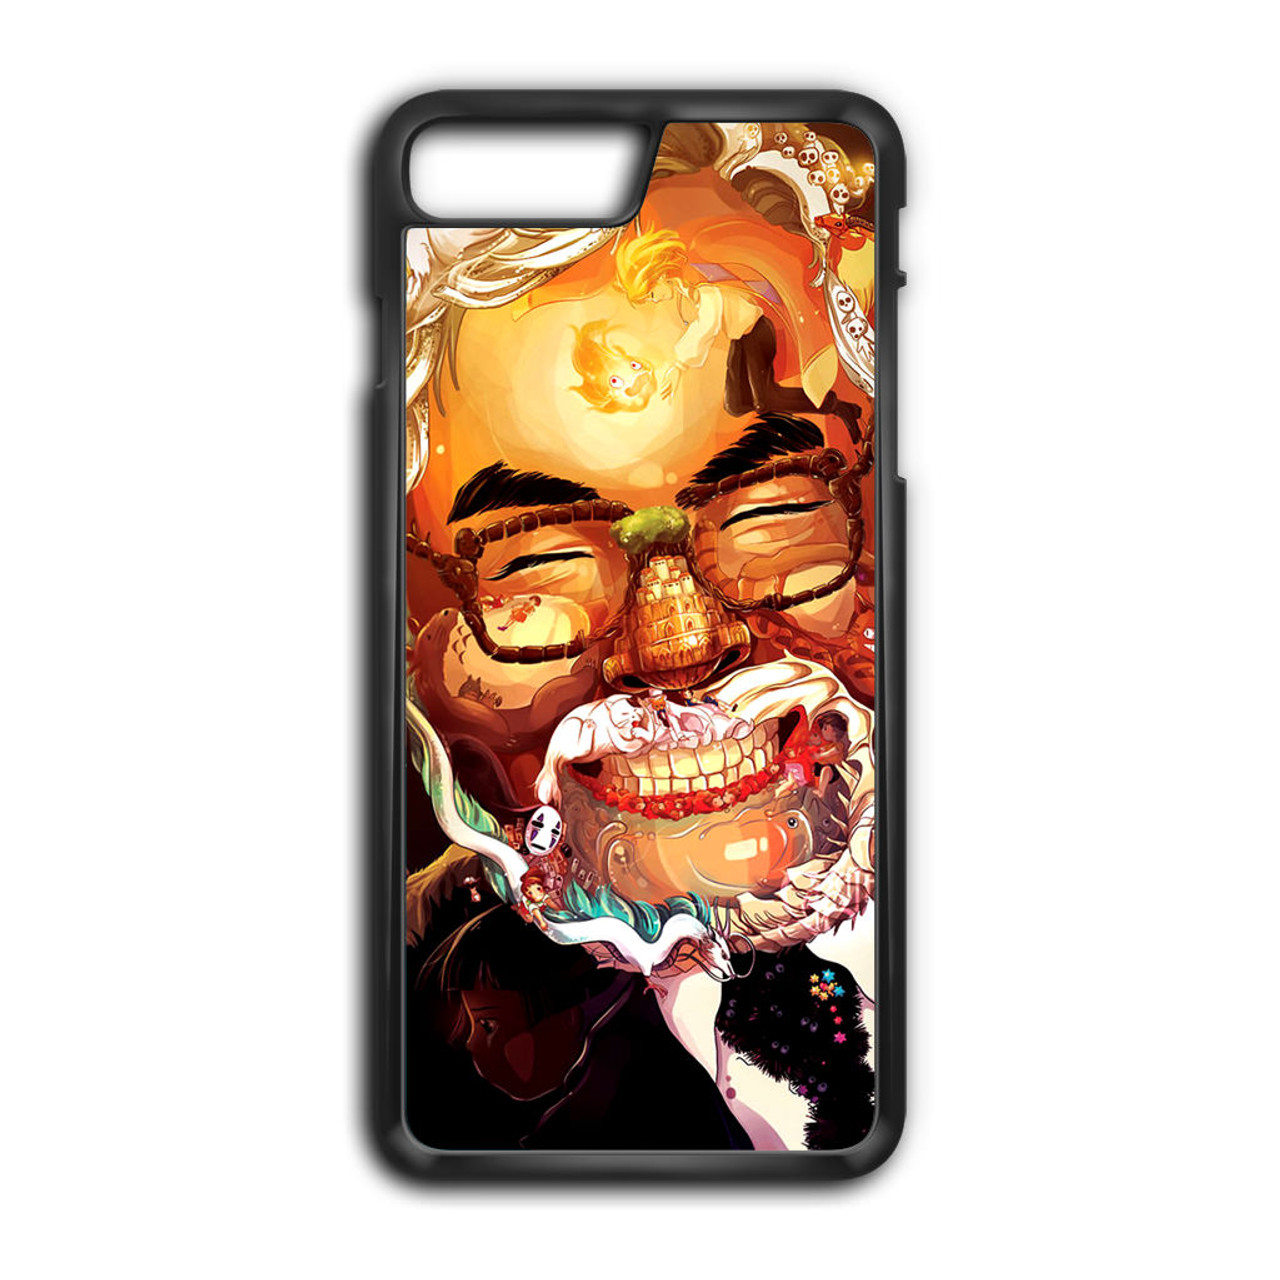 lowest price 82341 5ff48 Studio Ghibli Face Art Illustration Love Anime iPhone 8 Plus Case